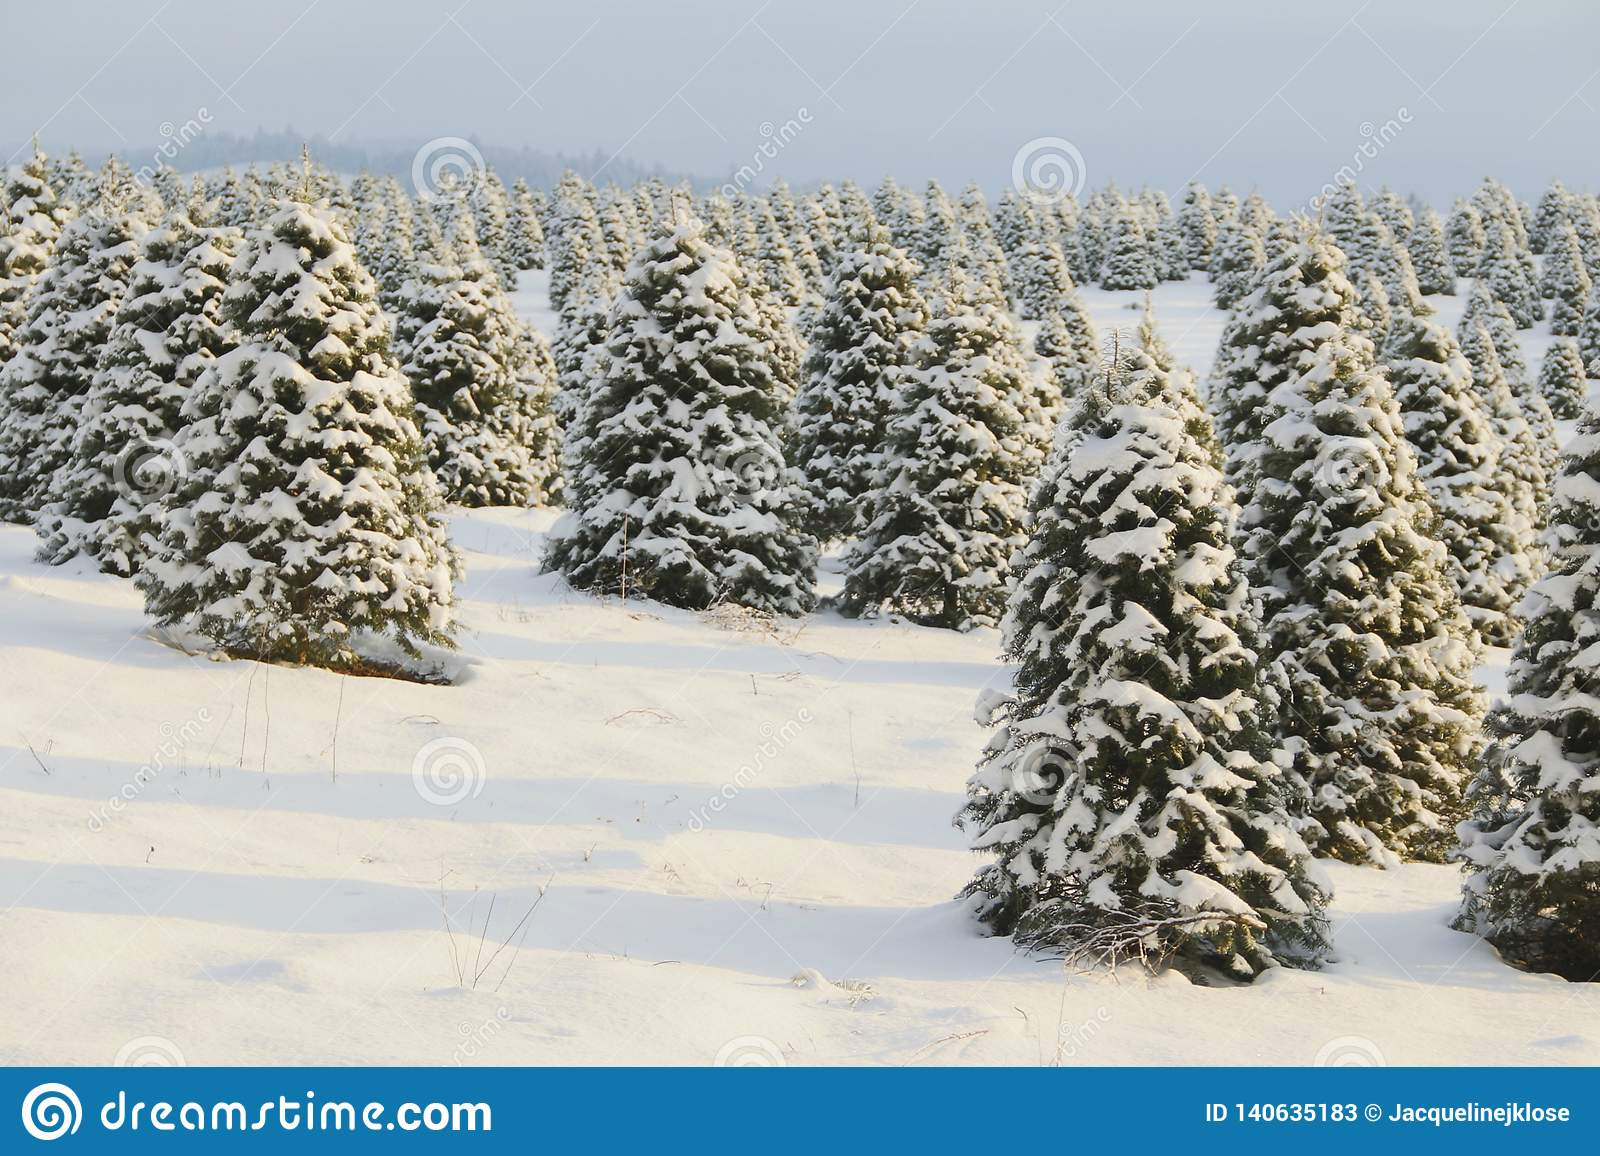 Douglas Fir Christmas Tree Farm Covered In A Blanket Of Snow A Winter Wonderland Trees Shown Is Soft Focus In Background Hazy Stock Image Image Of Jack Greeting 140635183